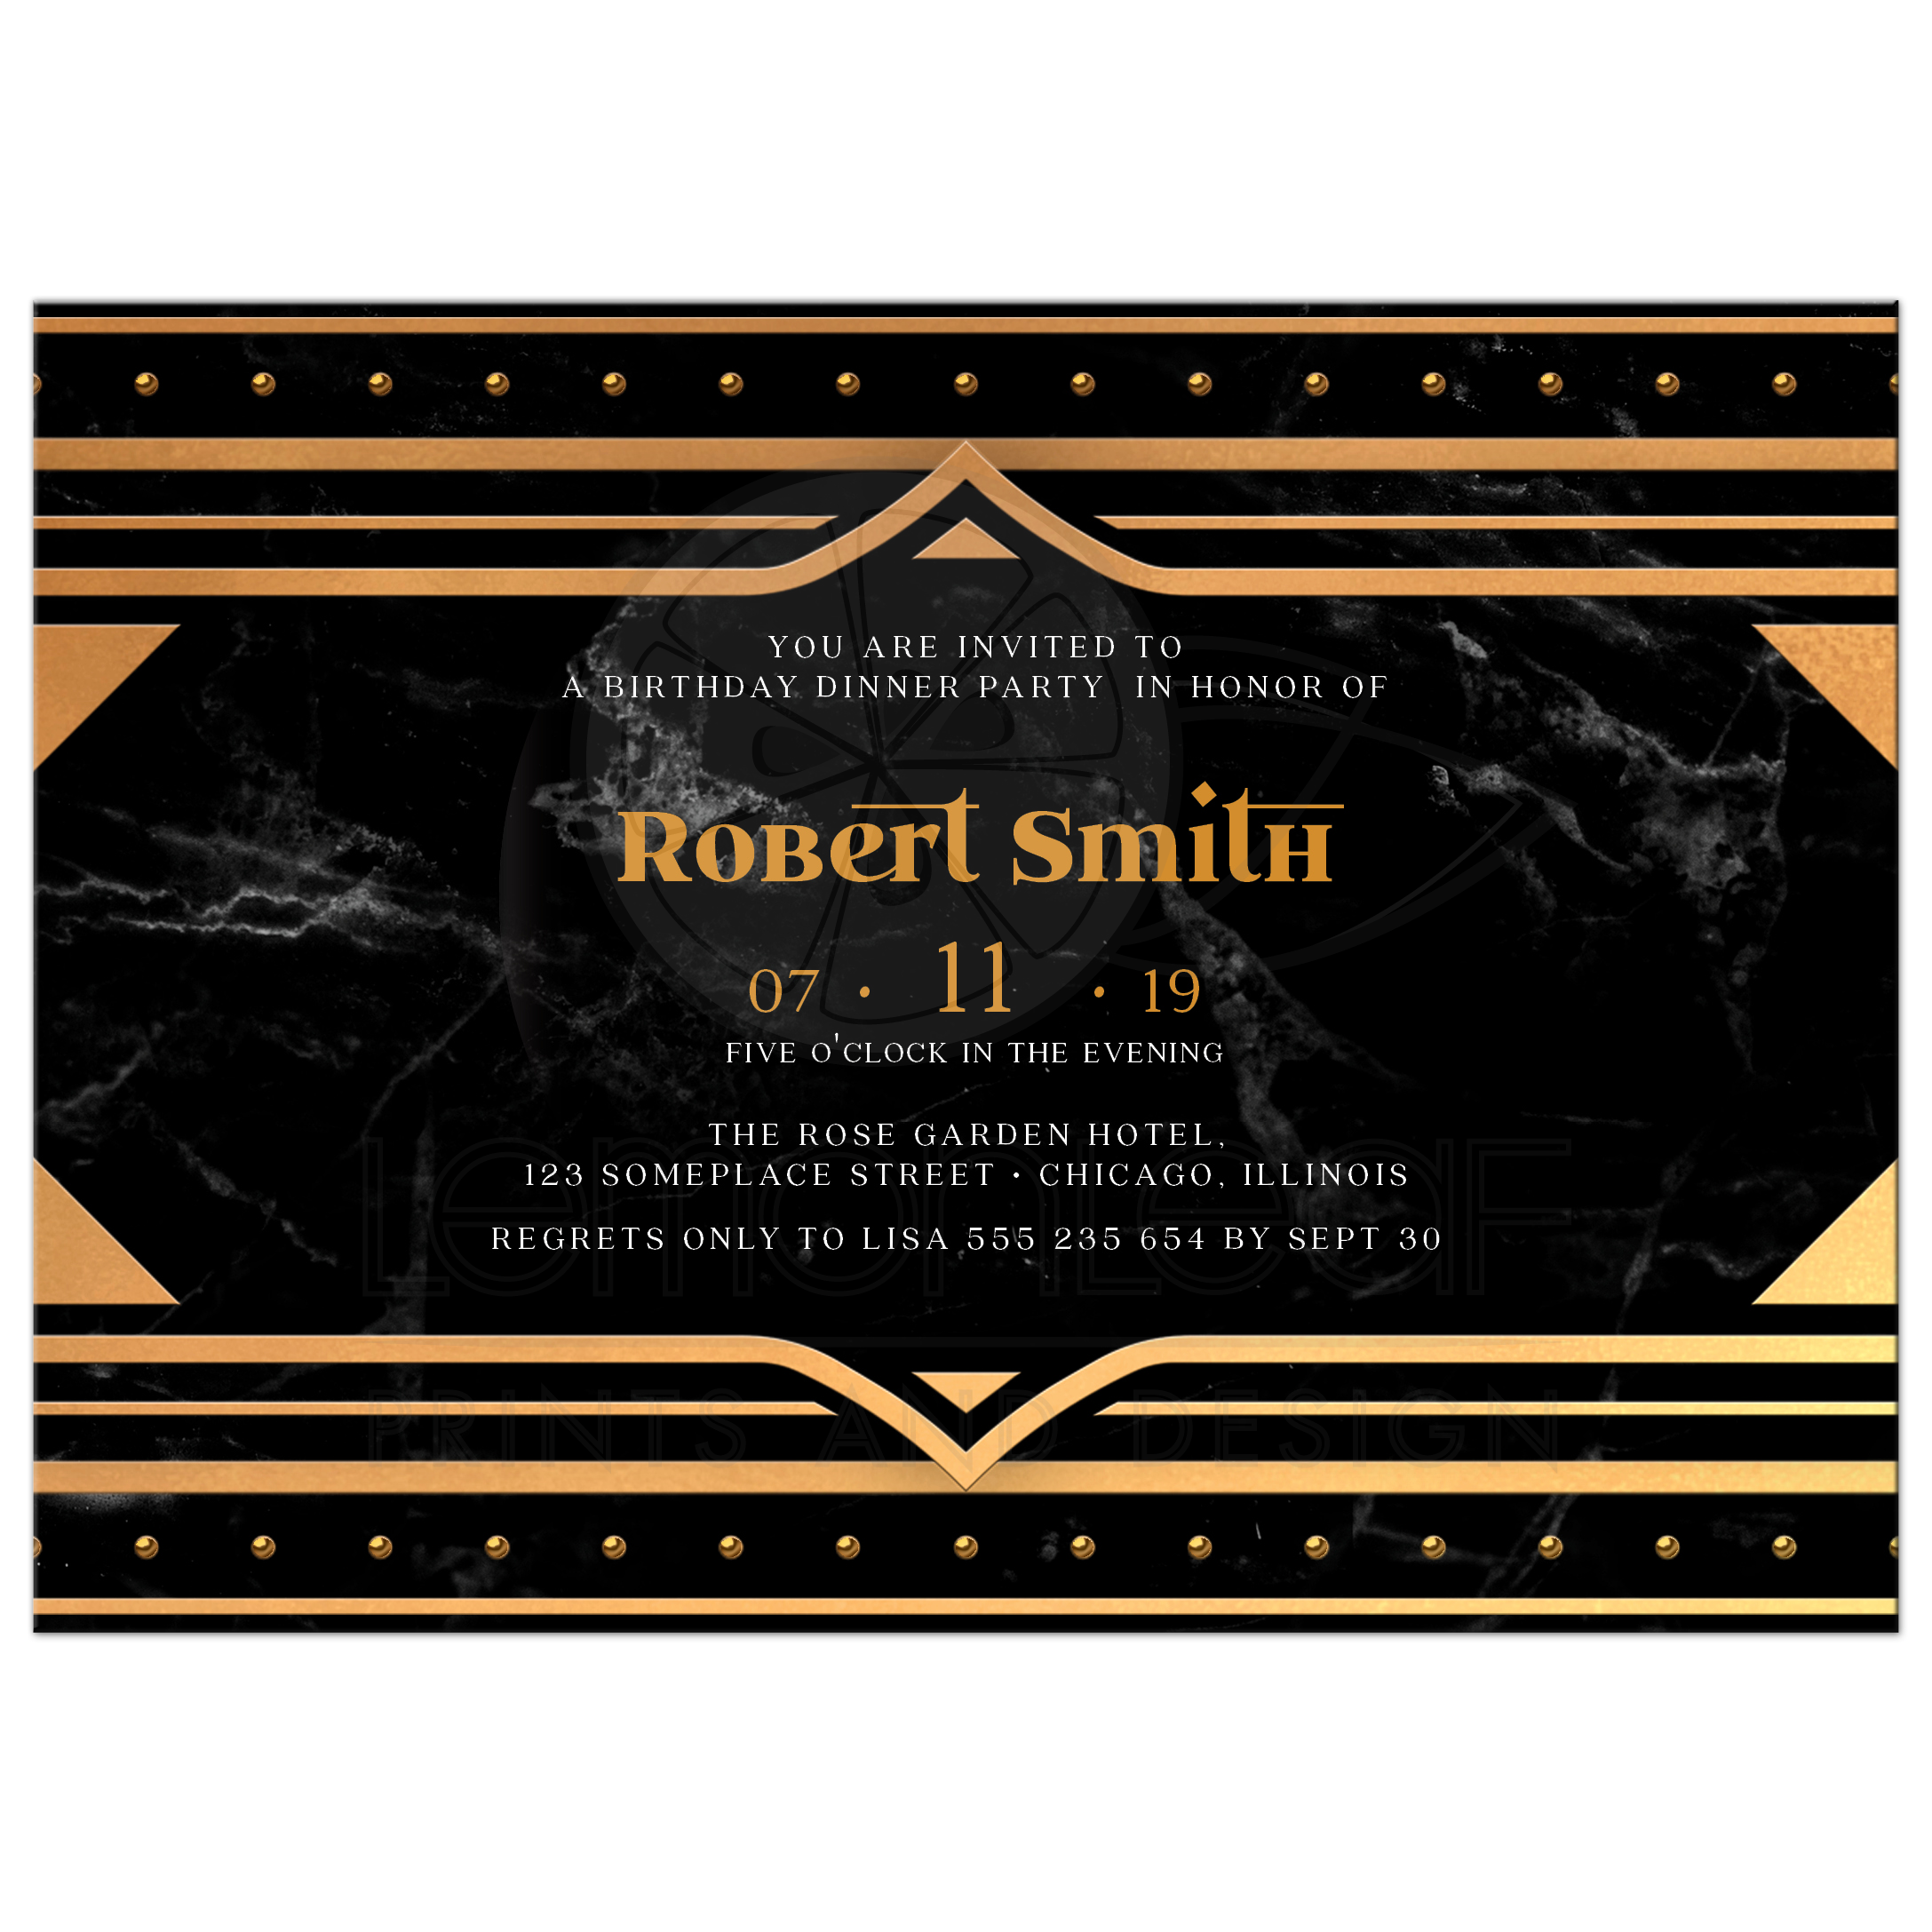 Black and gold 75th birthday invitations art deco dinner party 75th birthday art deco dinner party invitation stopboris